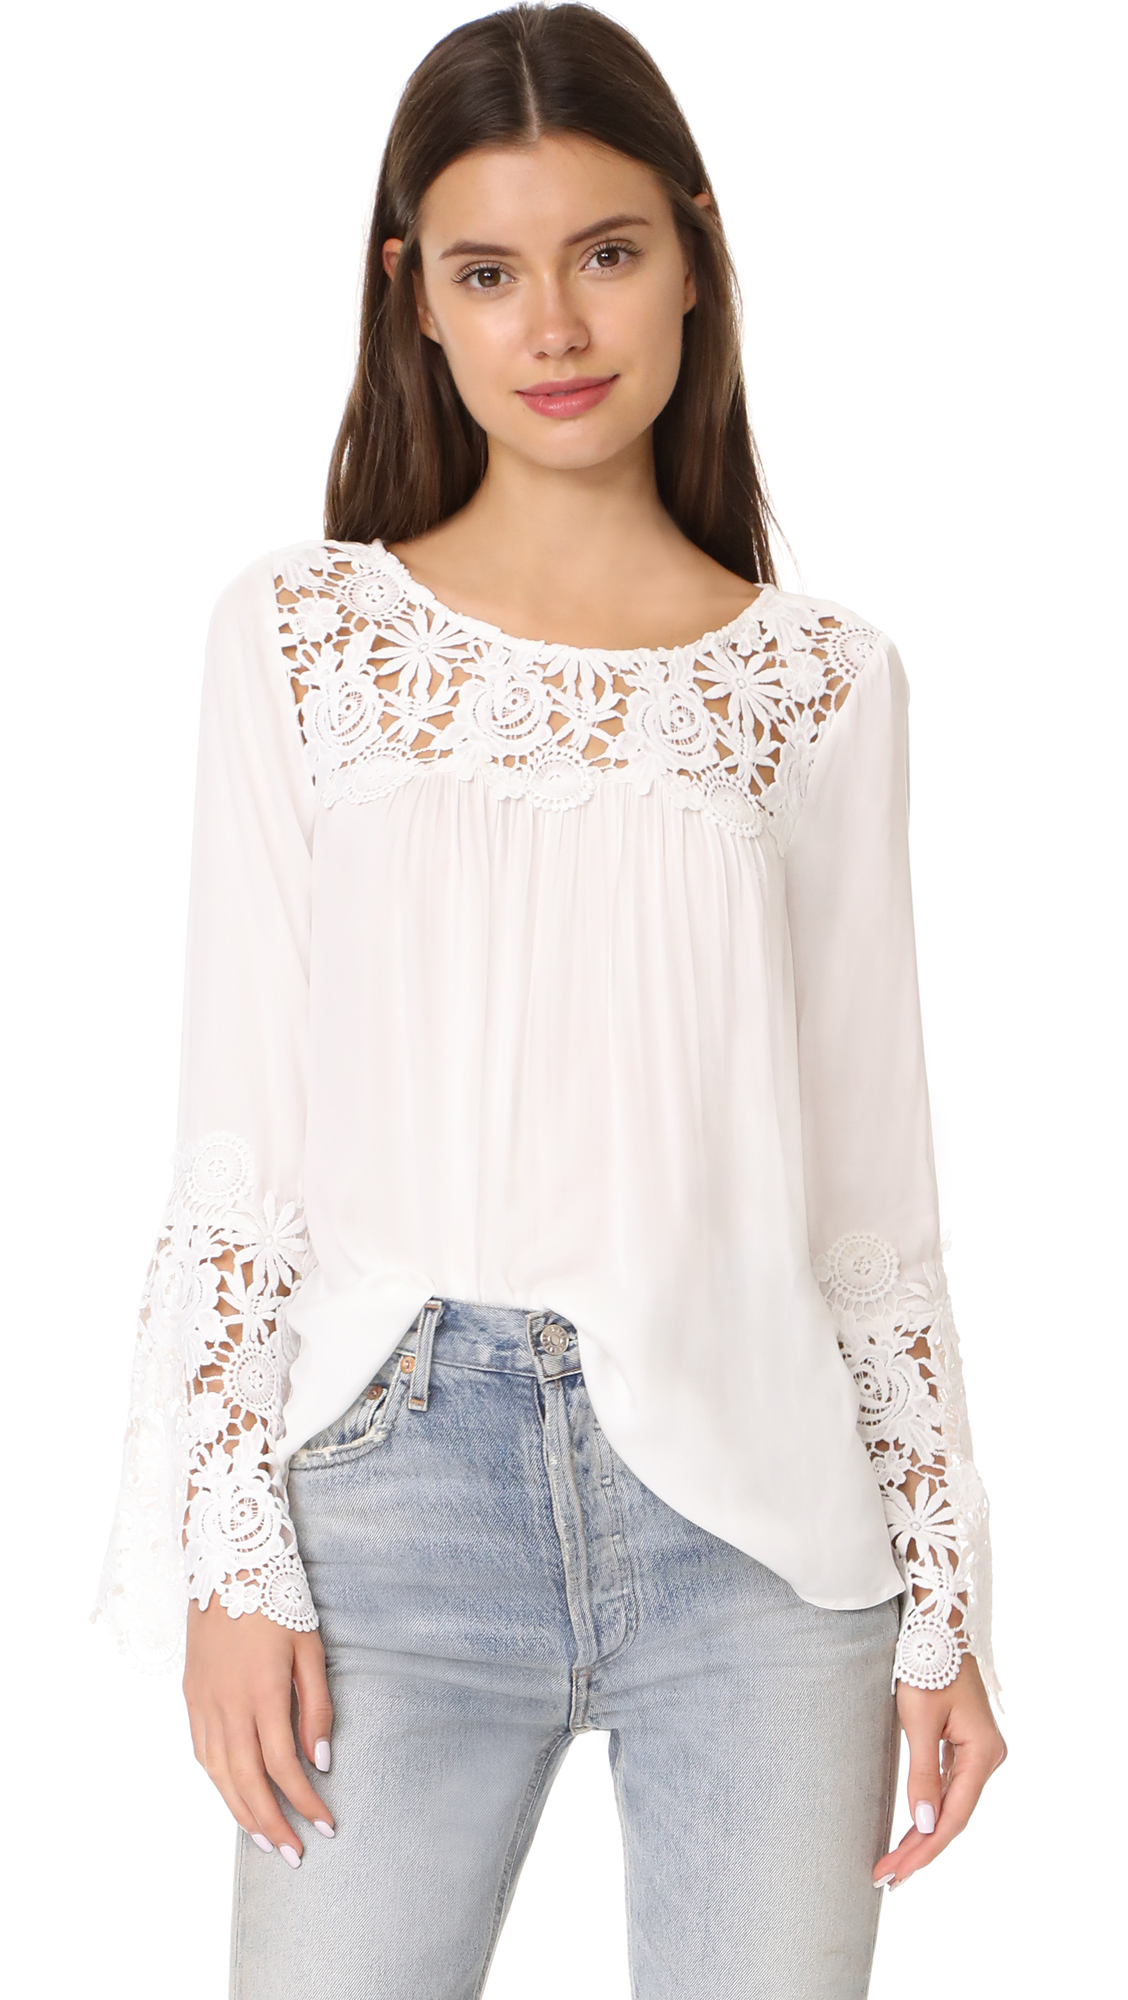 BB Dakota Zanna Lace Long Sleeve Top - Ivory